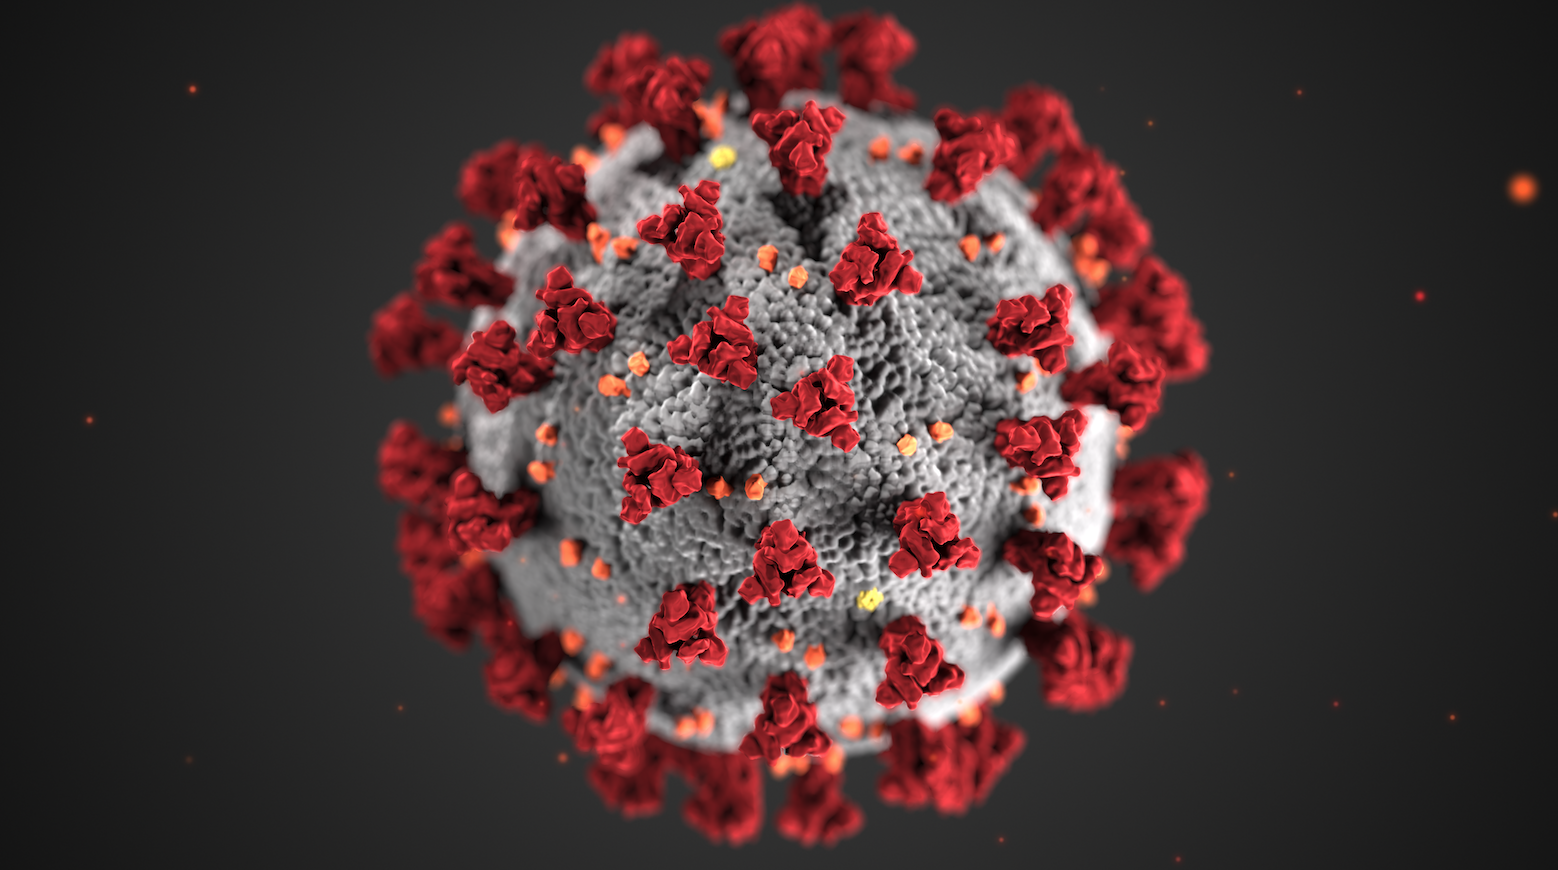 Decorative artistic render of the COVID-19 virus